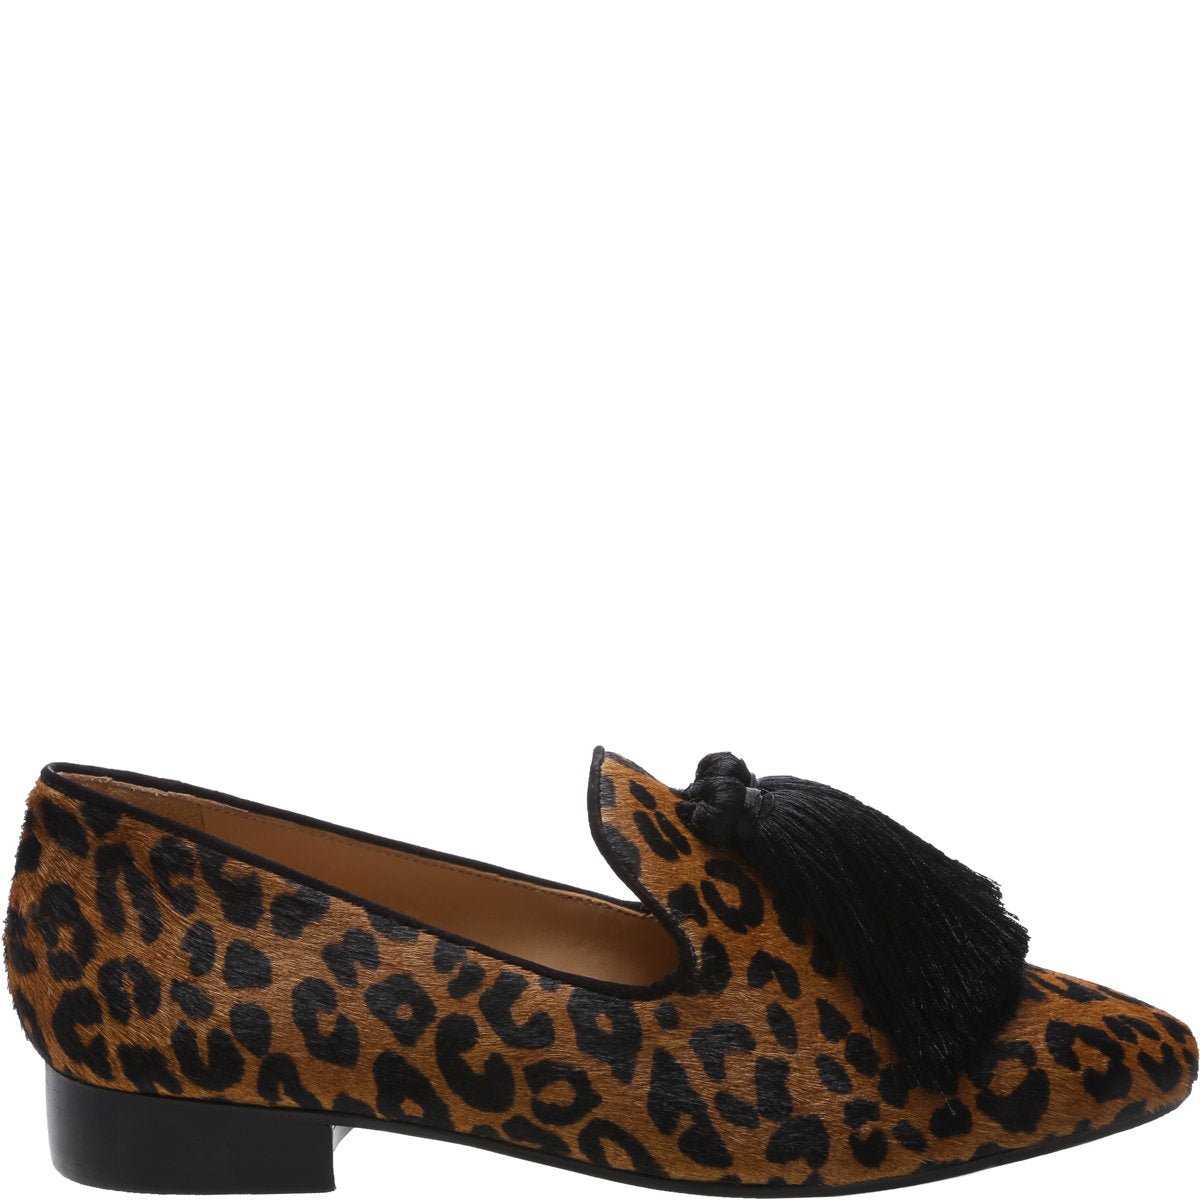 Jeaninne 2 Loafer Flat - Sandstone Leopard Printed Haircalf